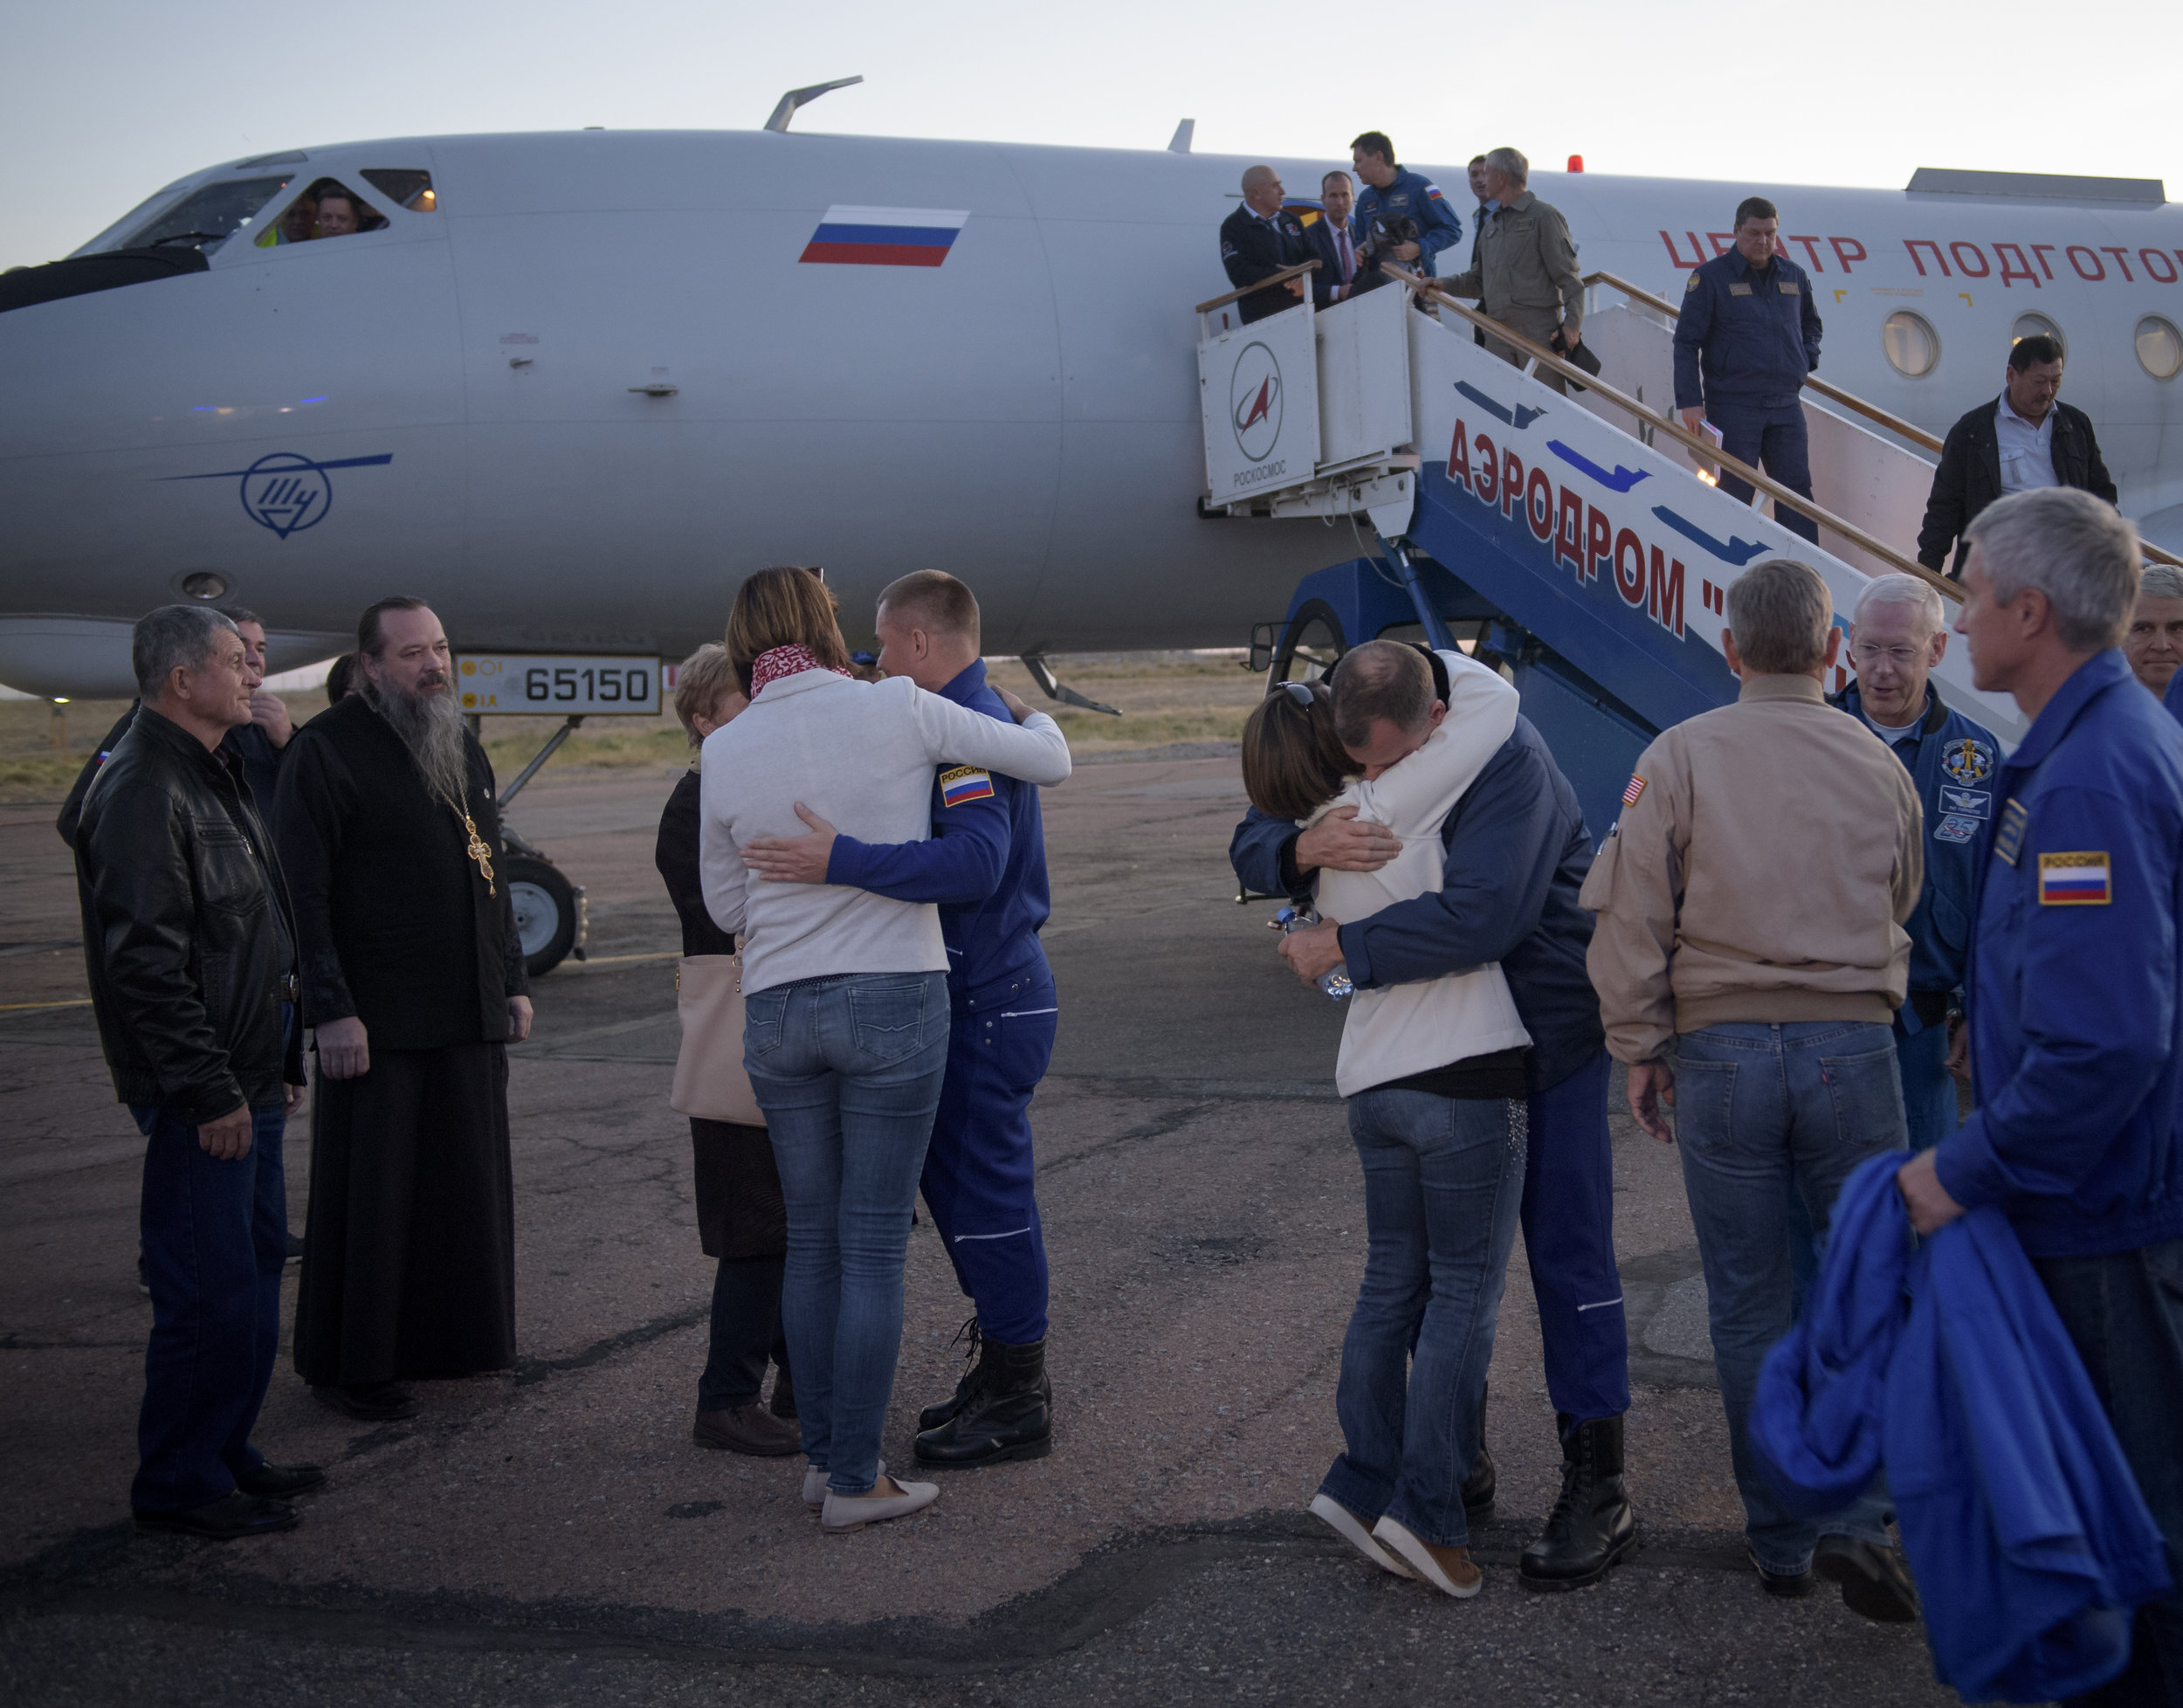 Alexsey Ovchinin, left and Nick Hague embrace their families after landing at the airport in Baikonur following their in-flight abort. Credit: NASA/Bill Ingalls